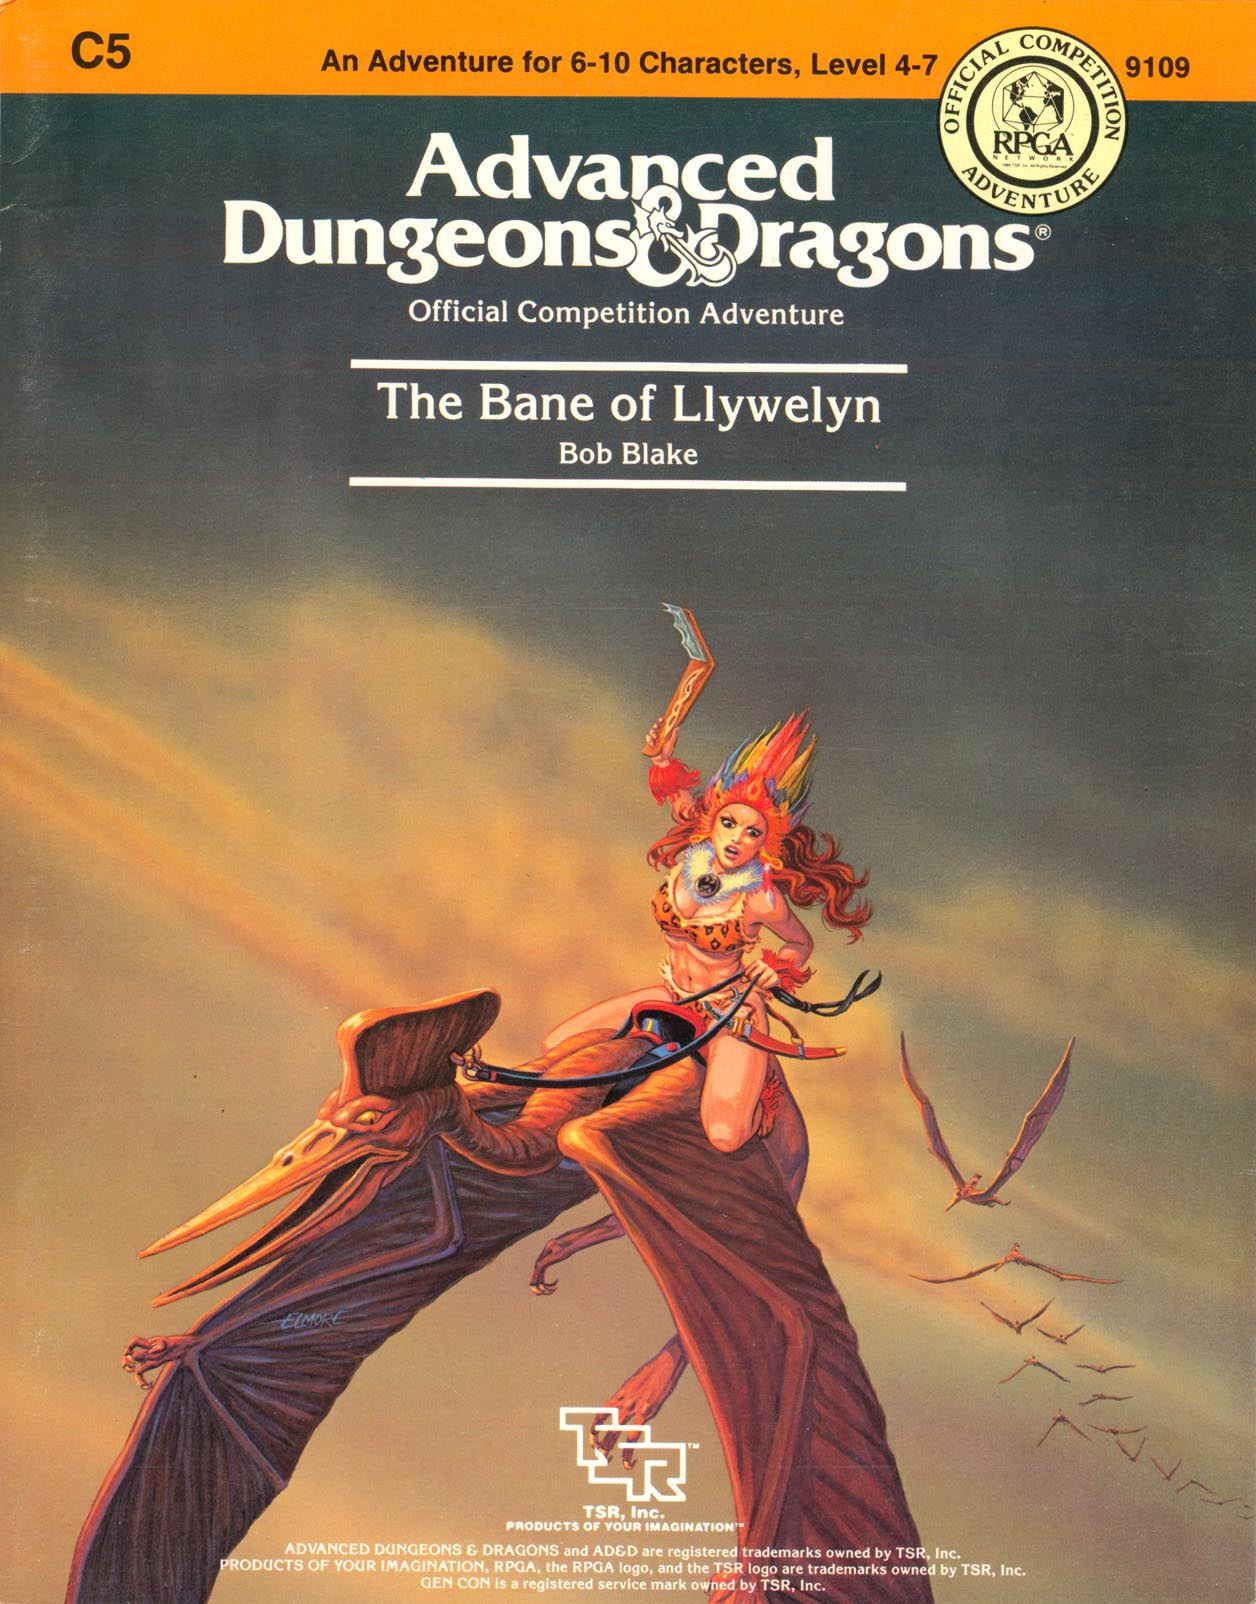 Cover of C5 The Bane of Llywelyn